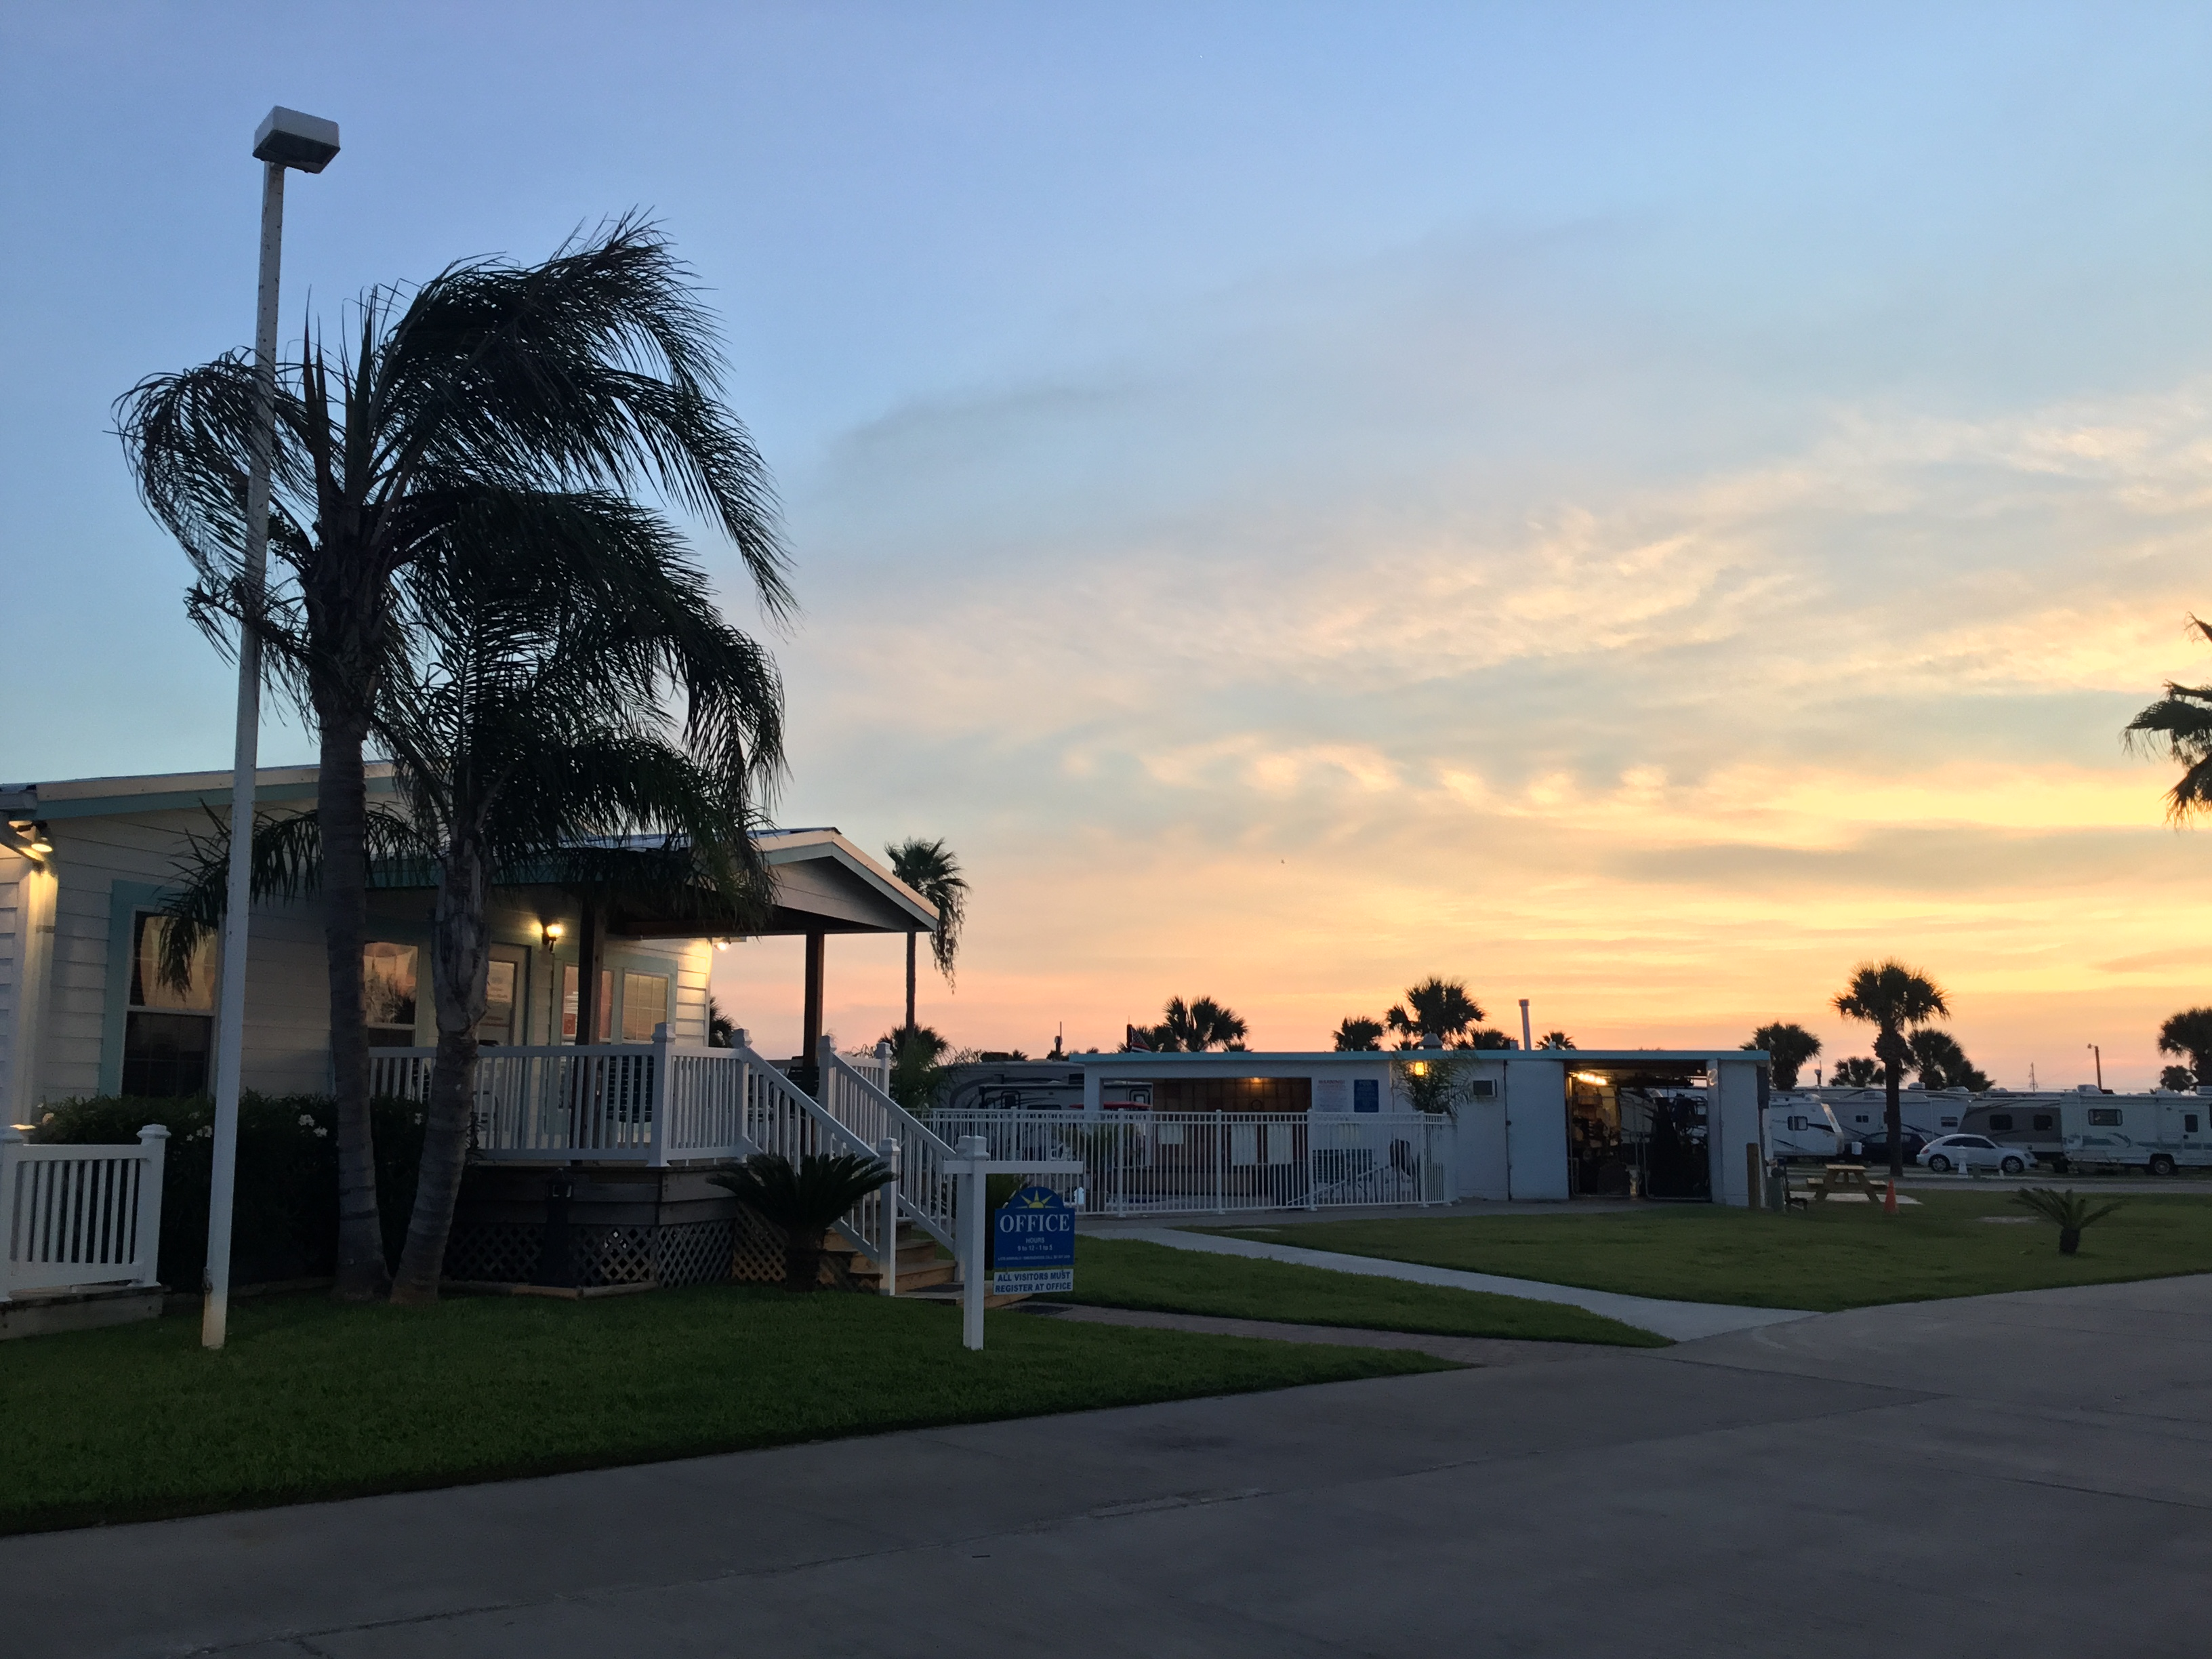 Sunset view of RV's parked at Island RV Resort in Texas